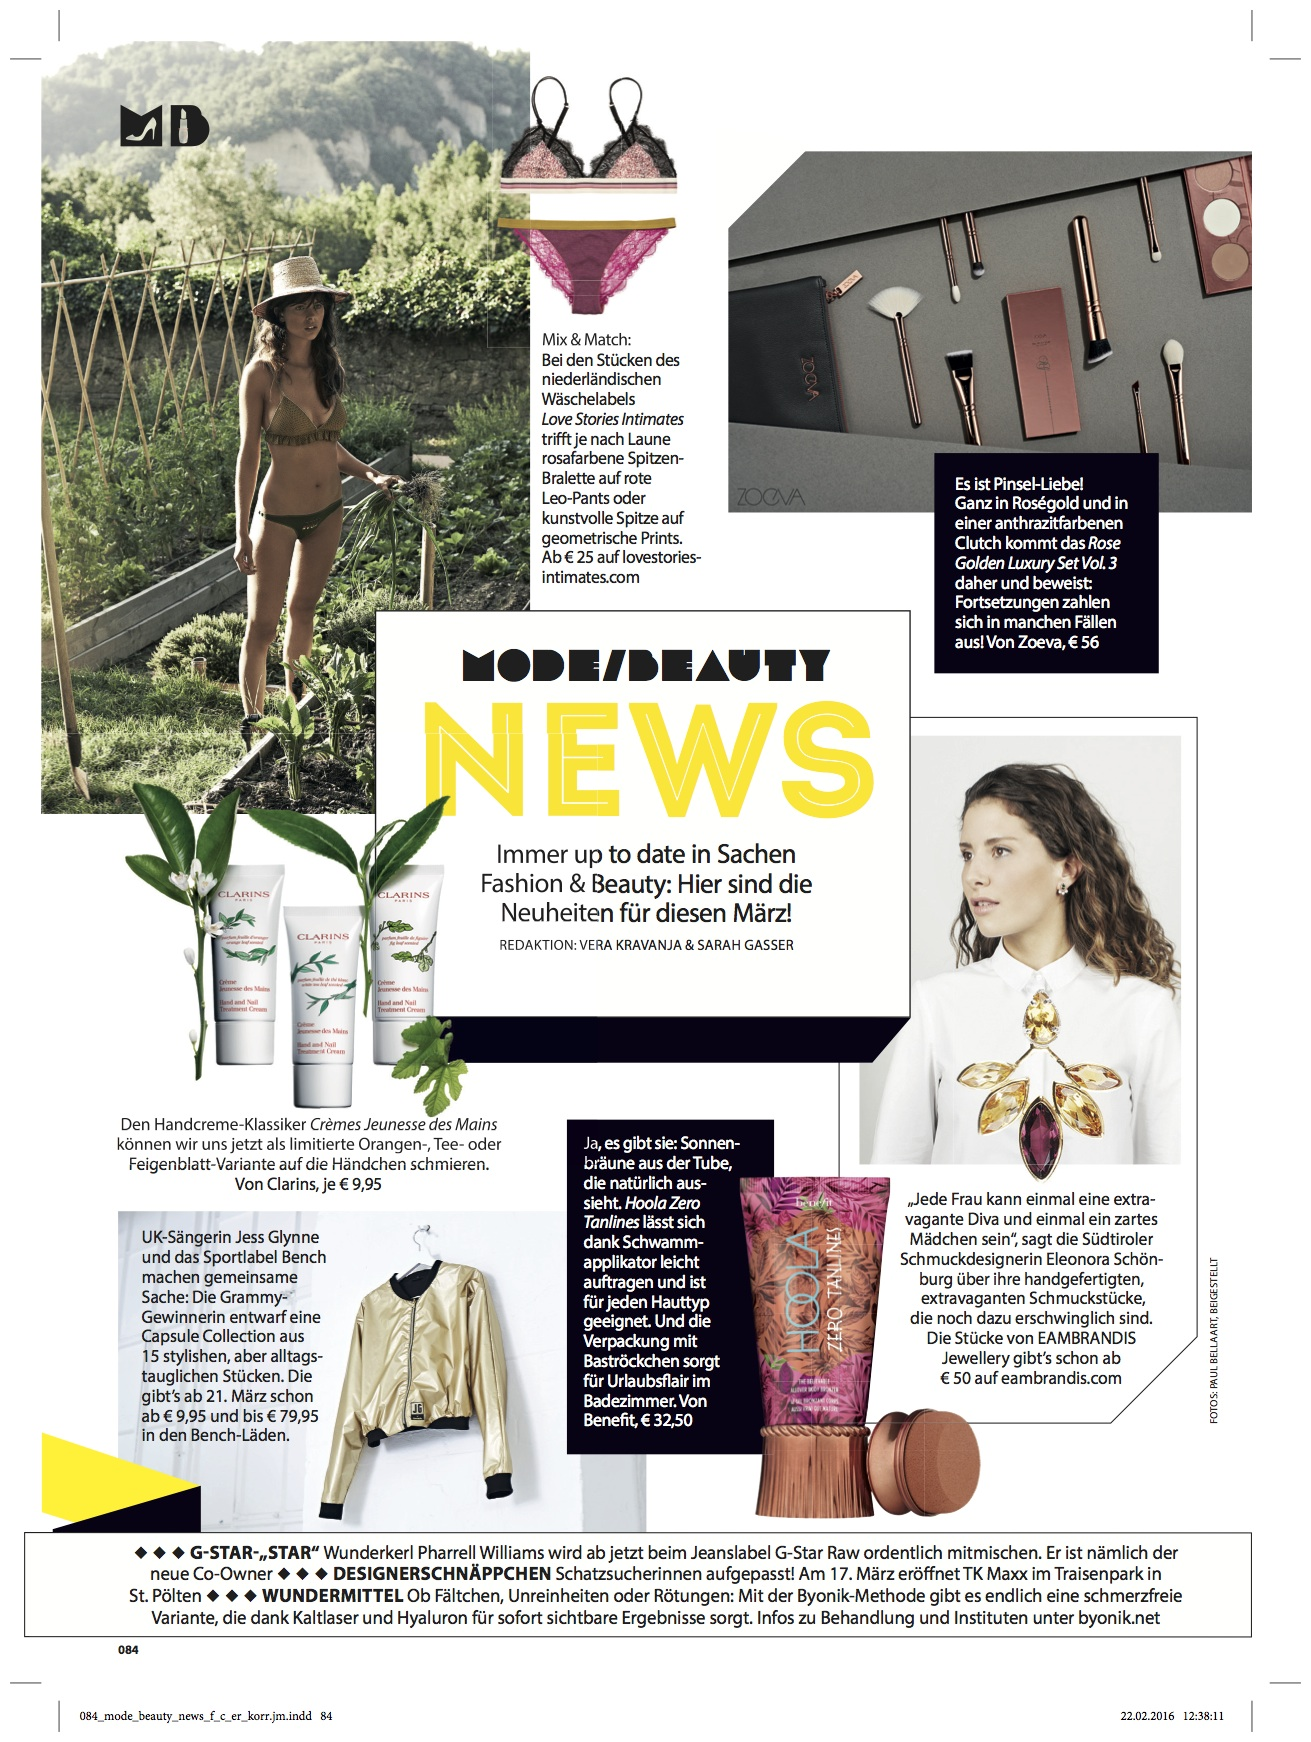 fashion miss magazine eambrandis jewellery jewelry feature report young designer vienna